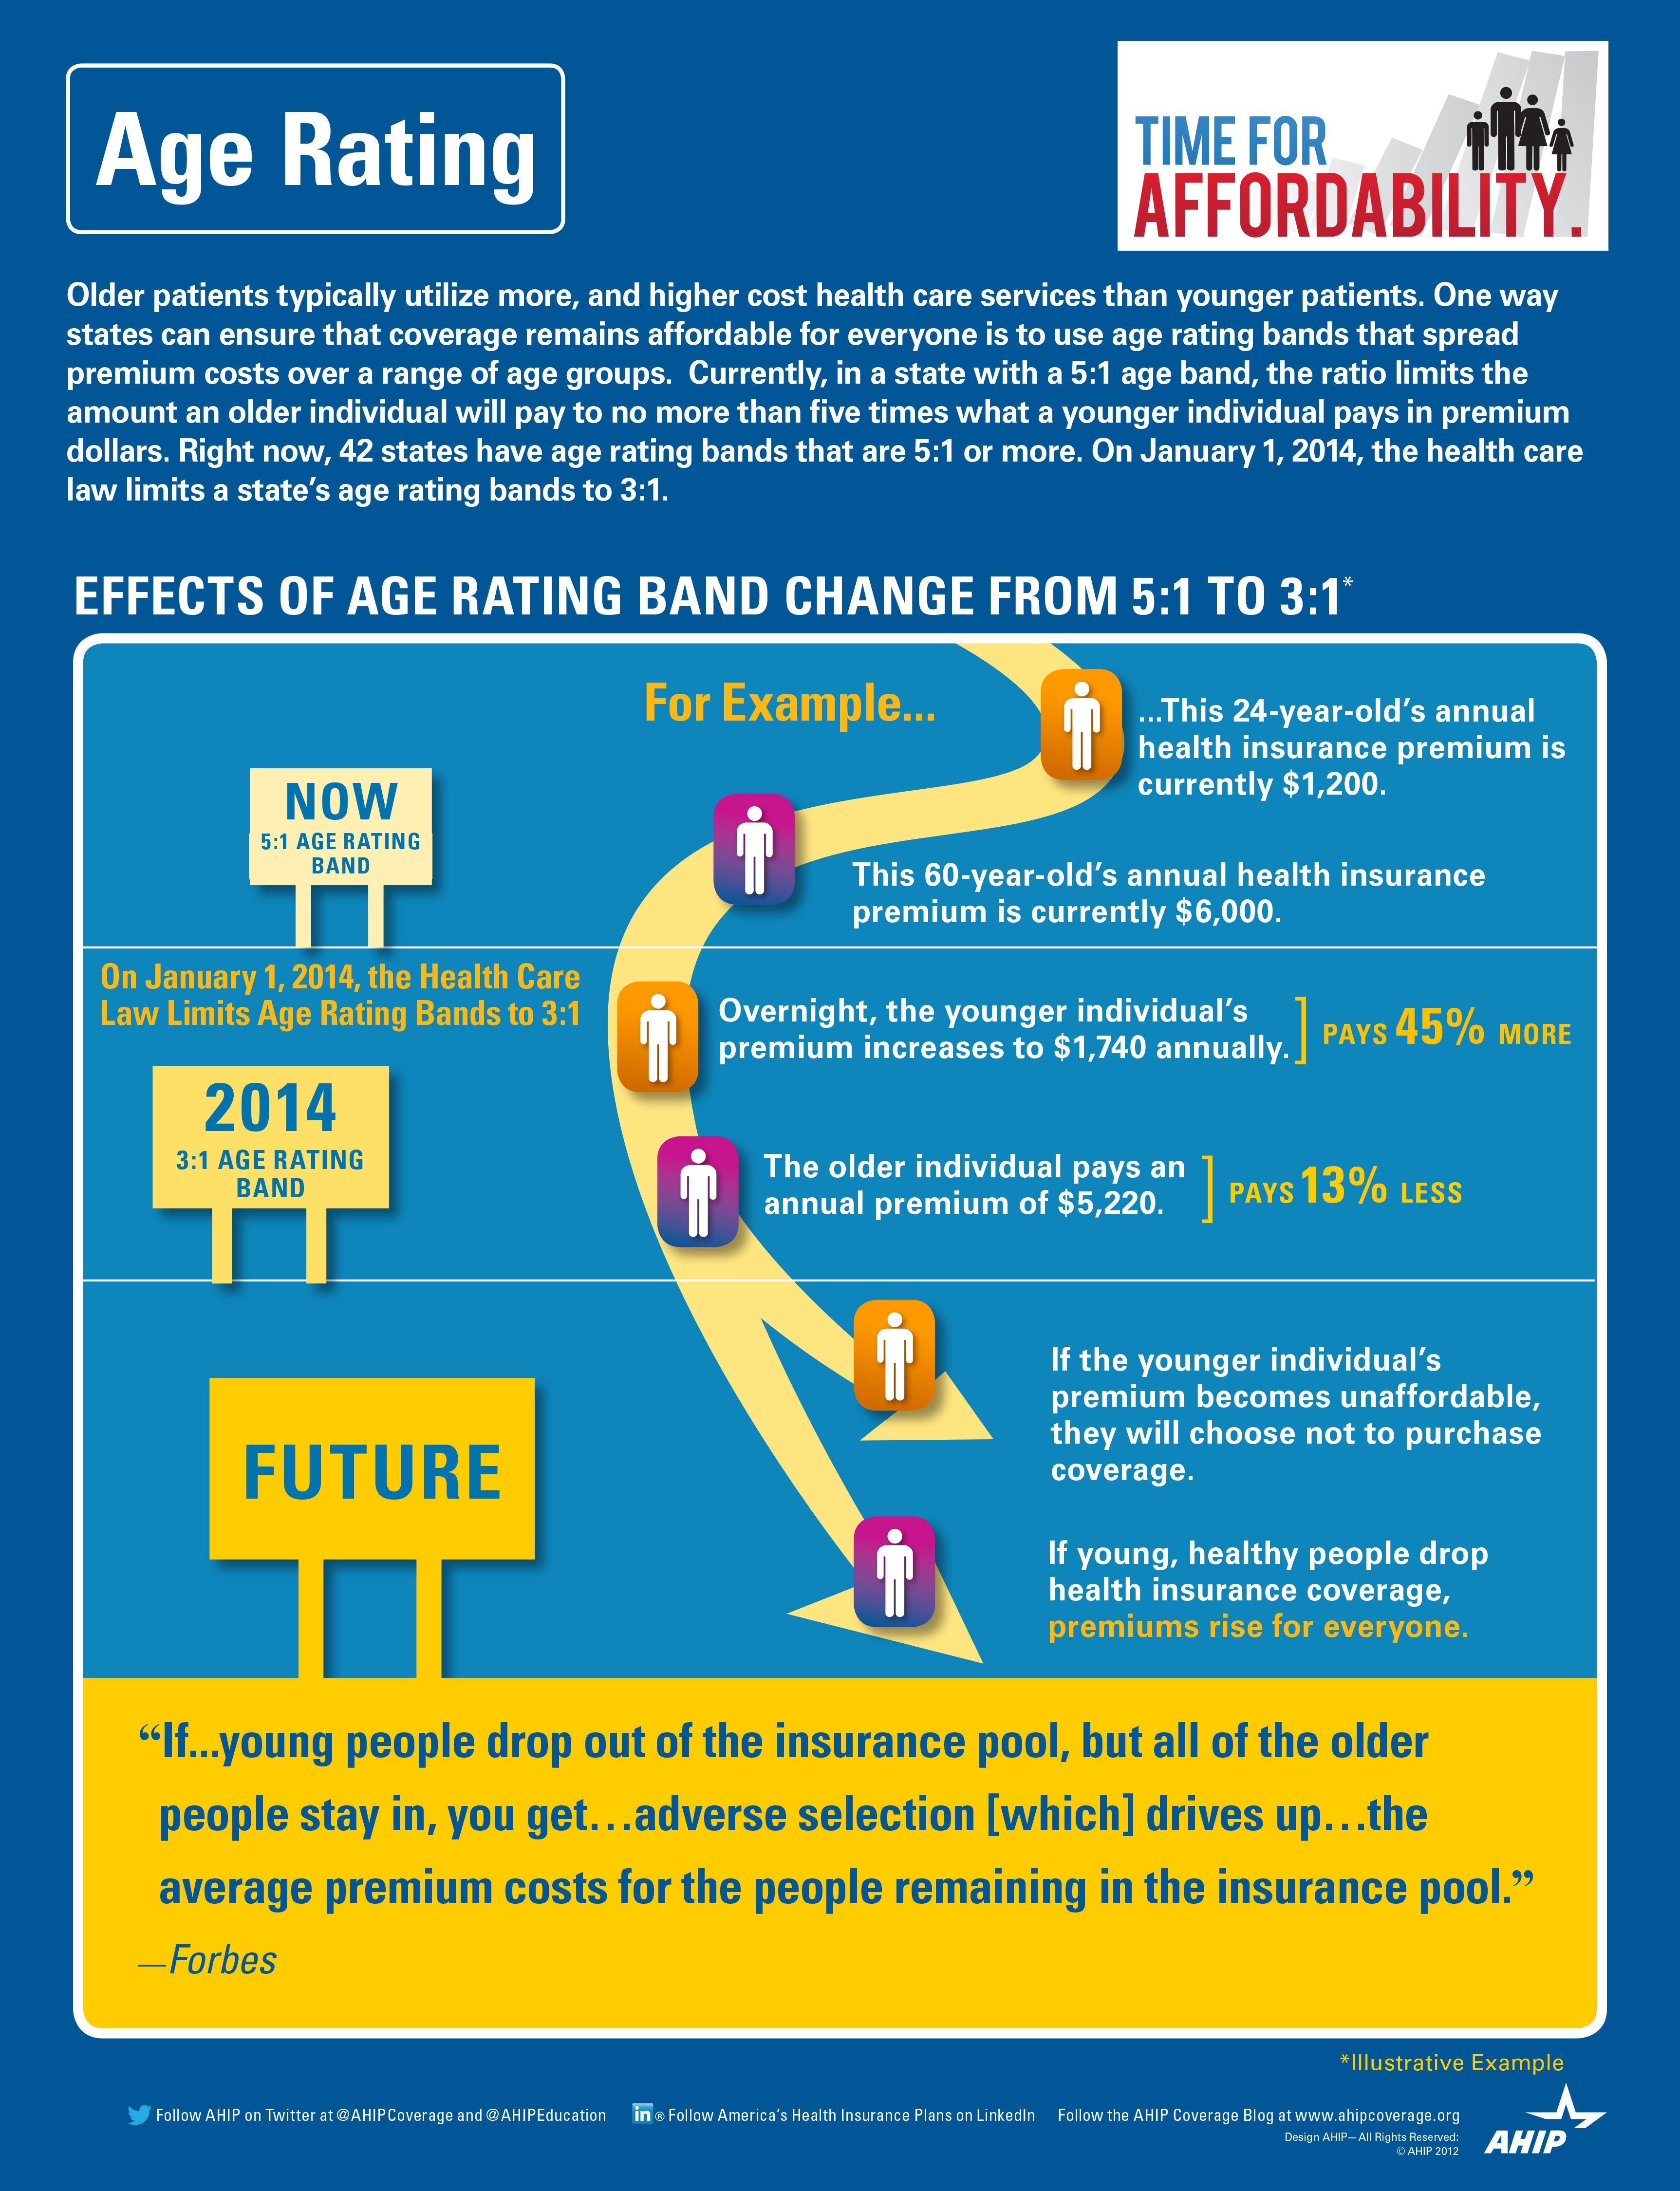 New Study Finds ACA's Age Rating Restrictions will